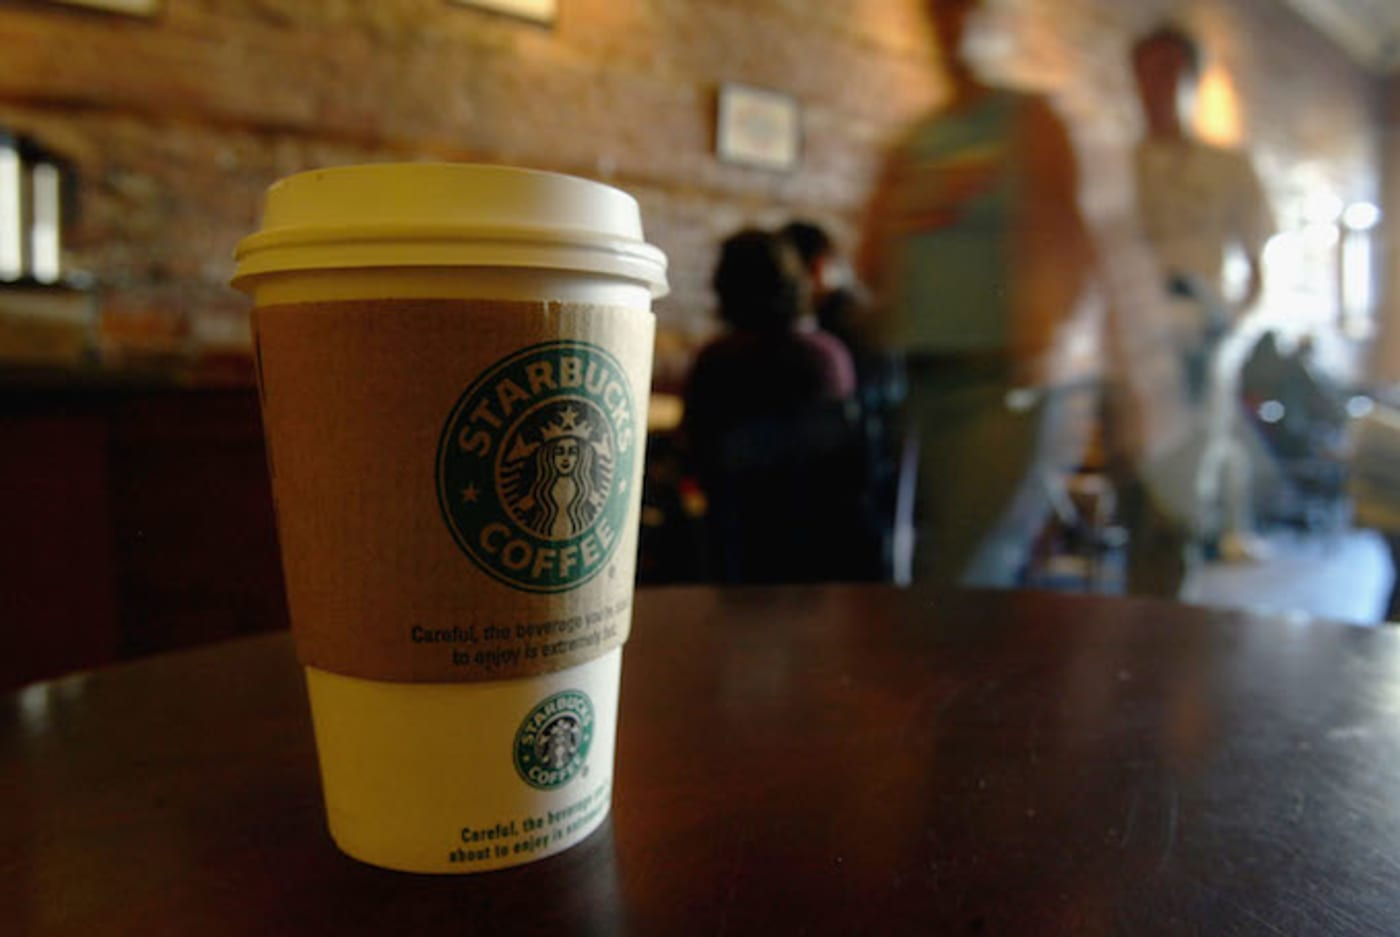 This is a picture of Starbucks.